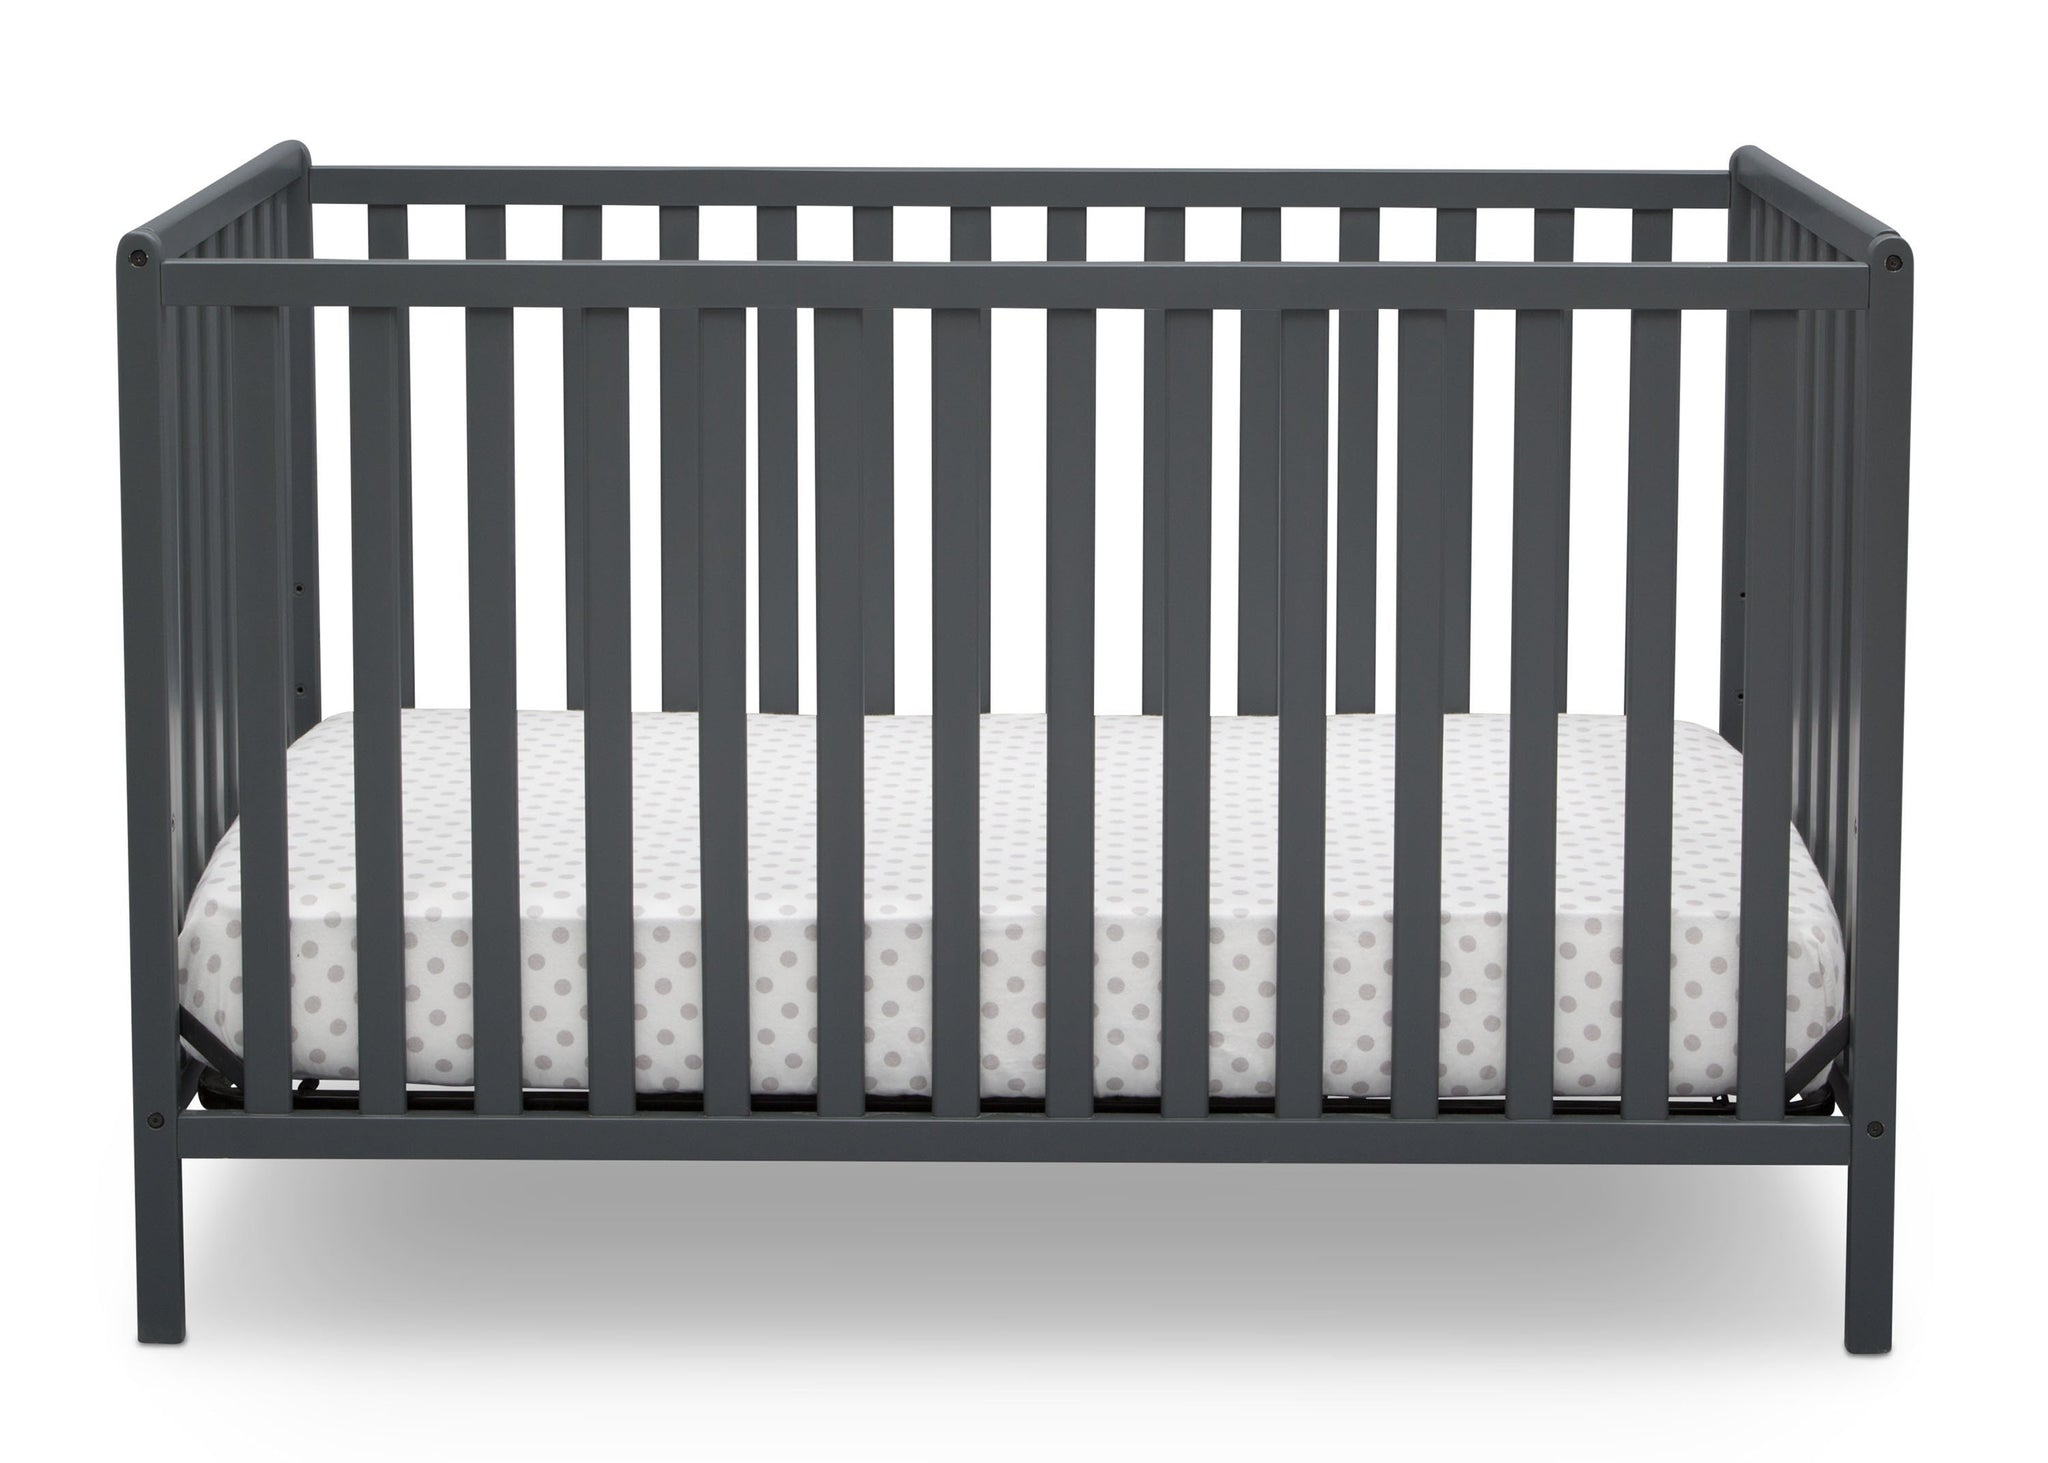 Delta Children Charcoal Grey (029) Heartland 4-in-1 Convertible Crib, Front View b2b